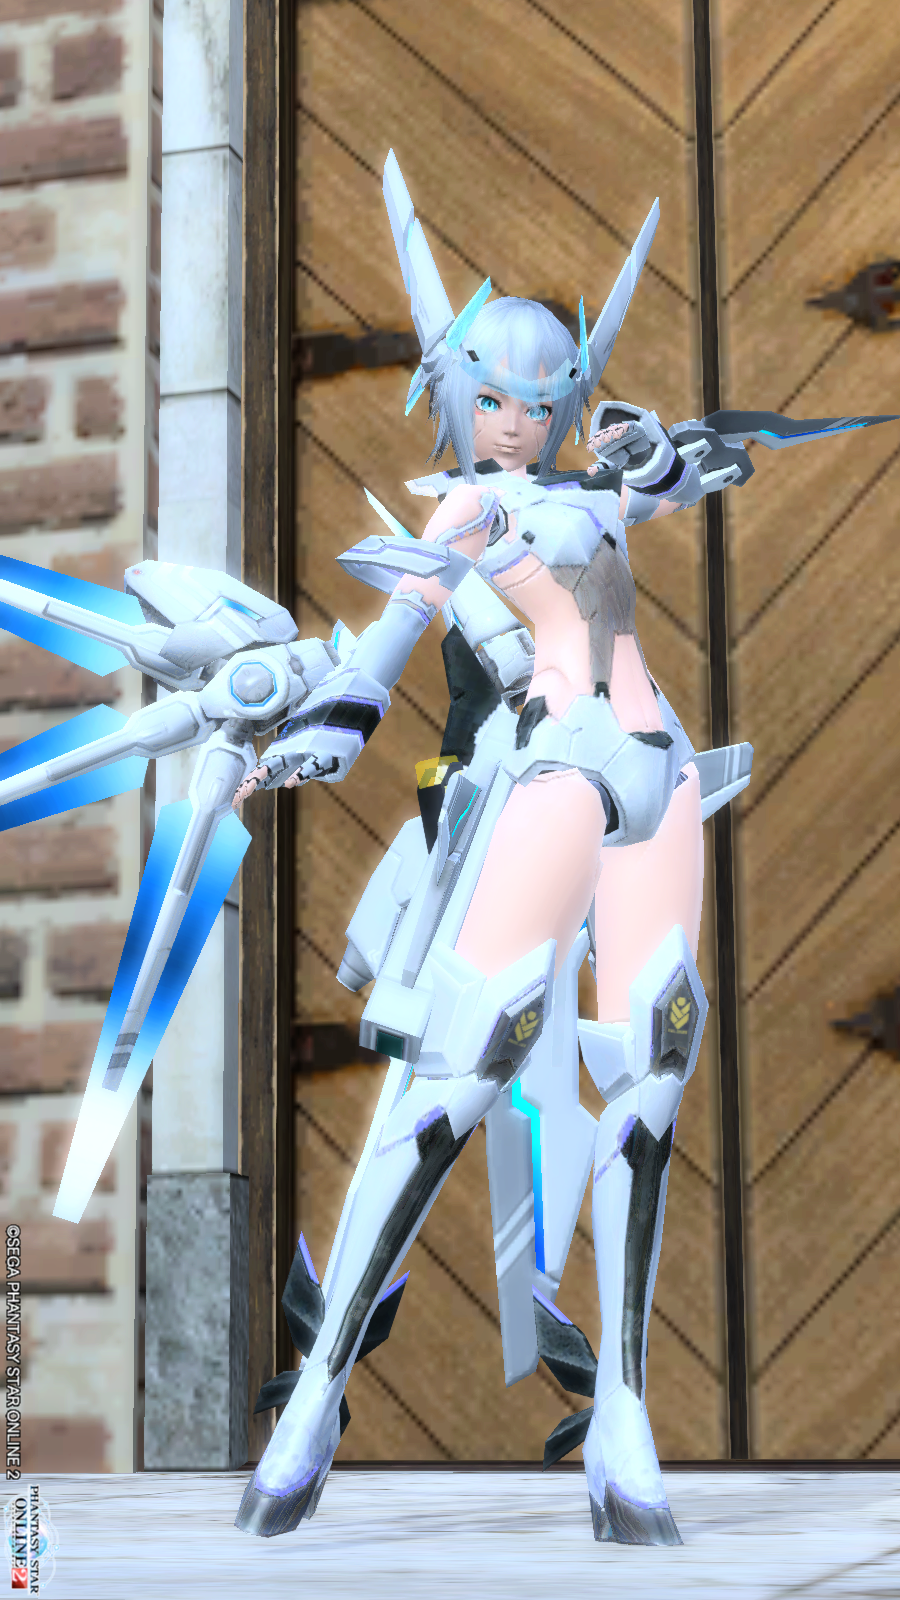 pso20150126_201132_018.png